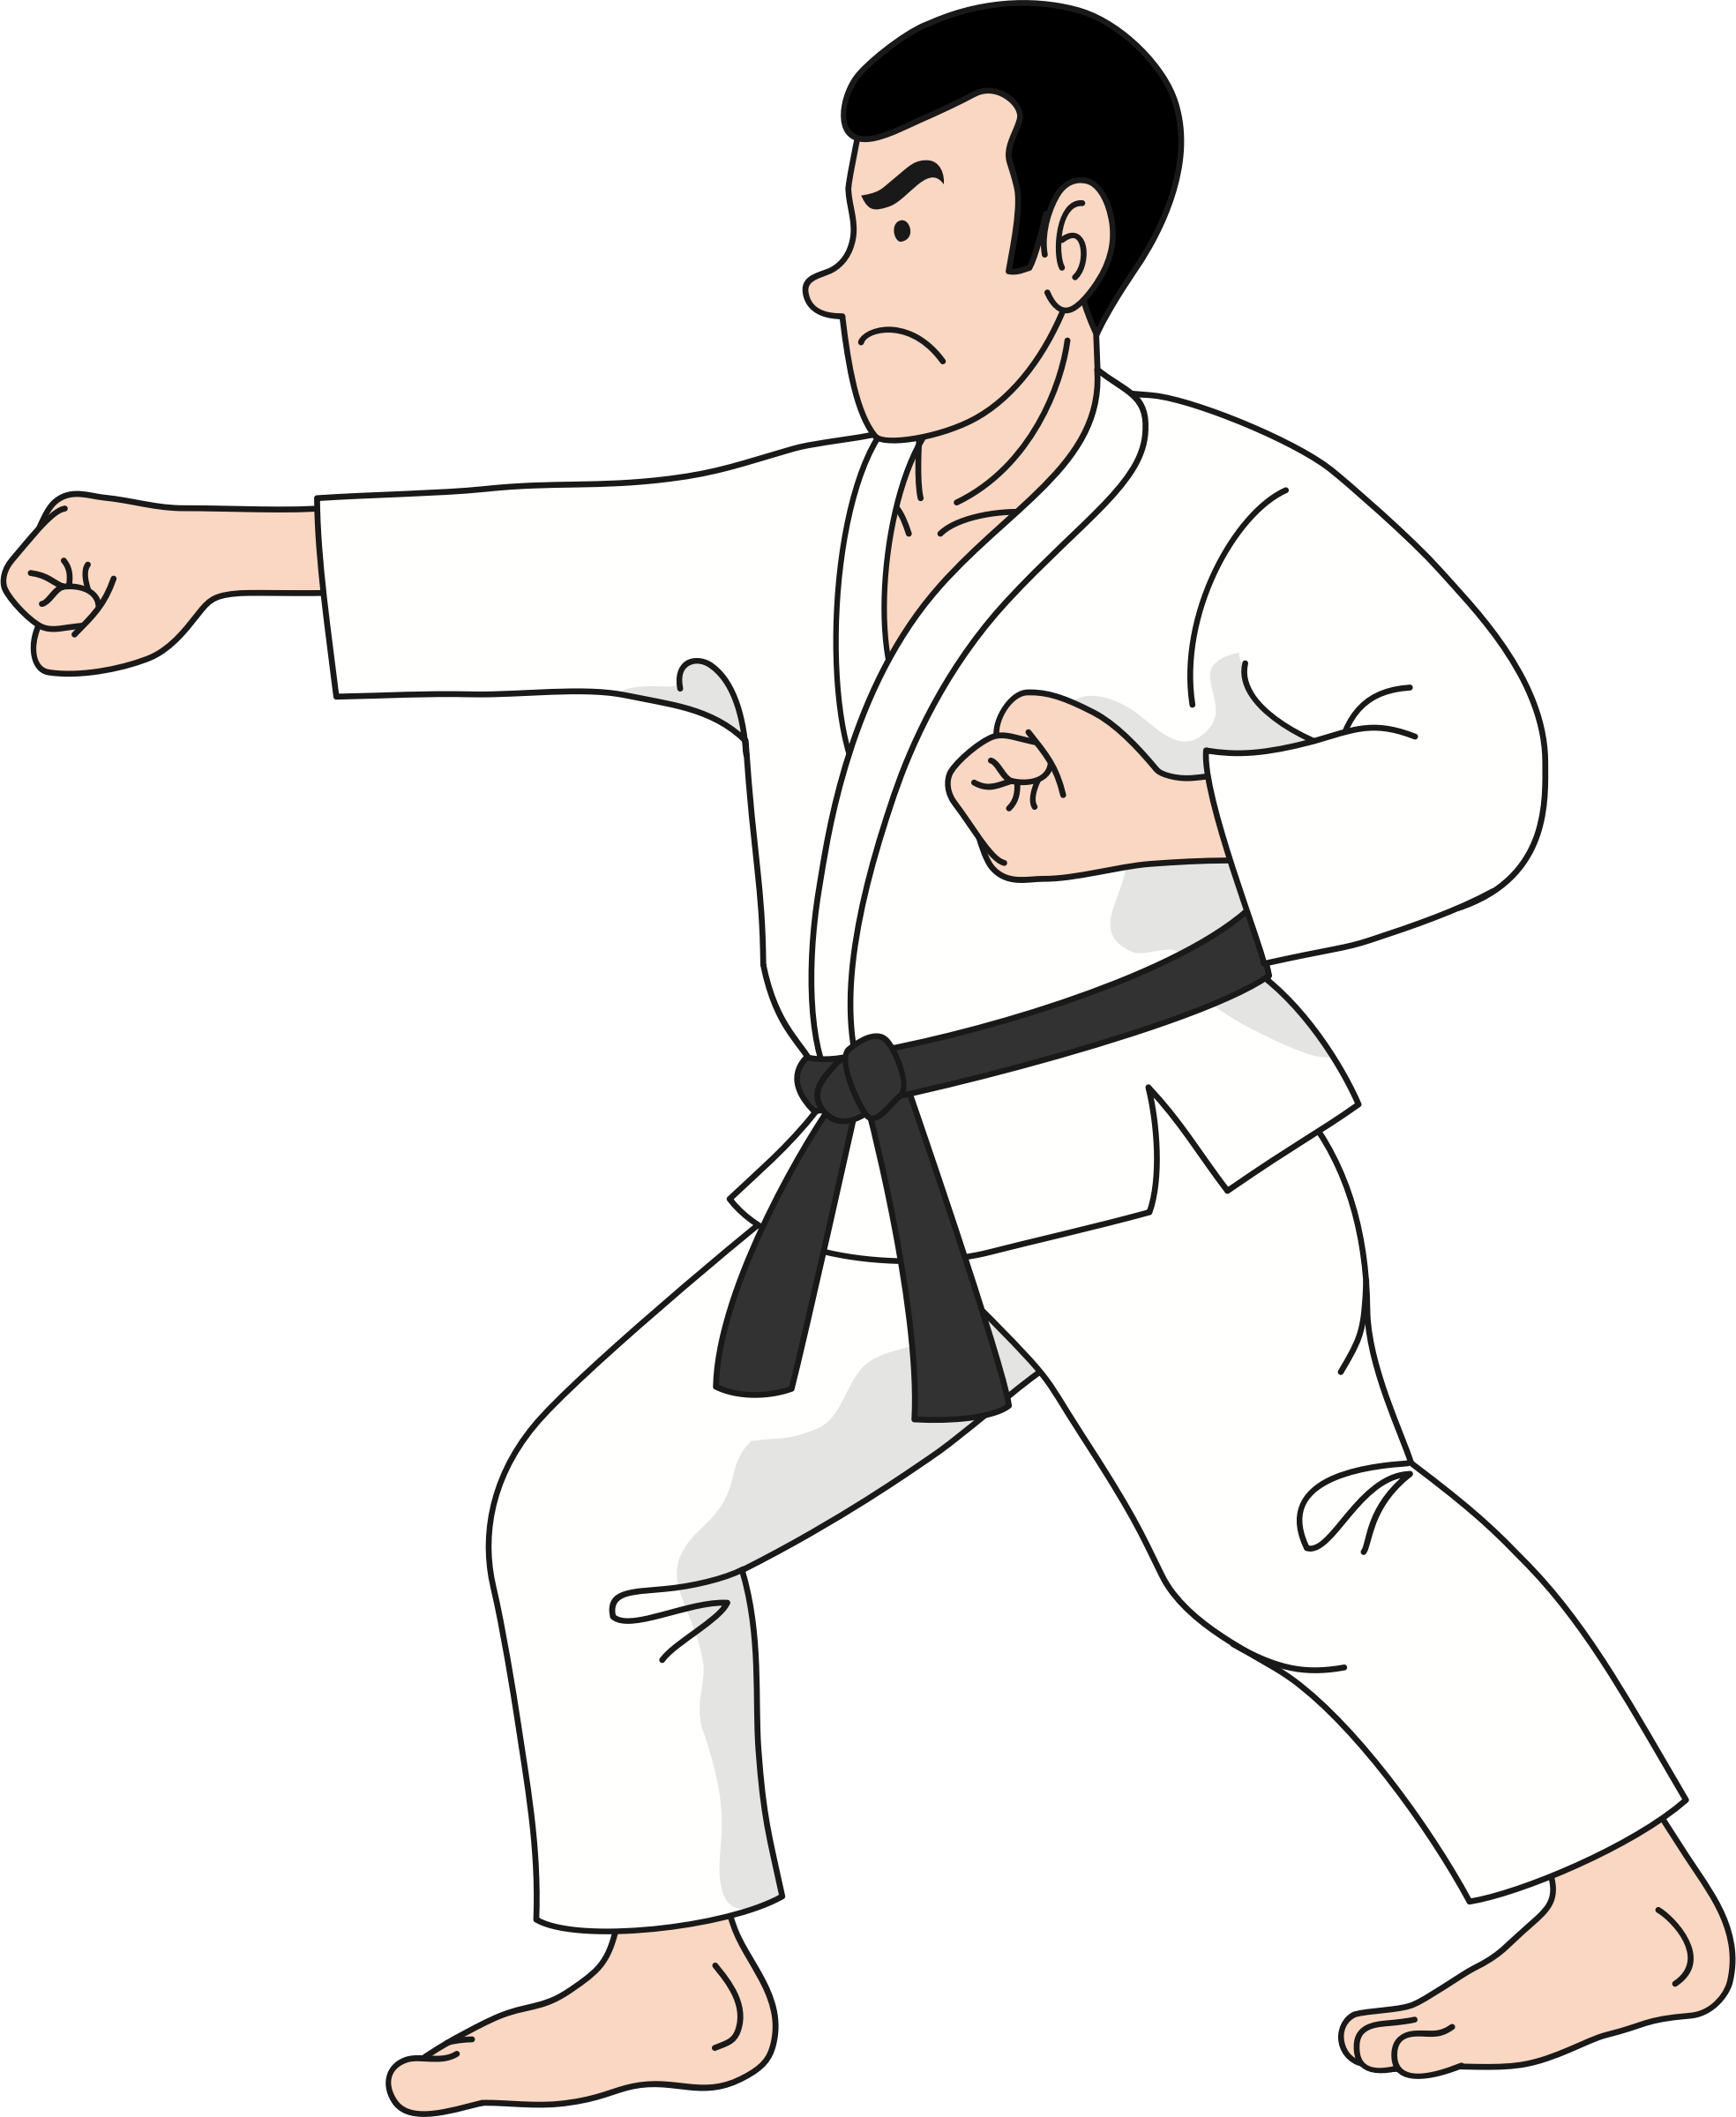 Martial arts clipart. Karate practice big image